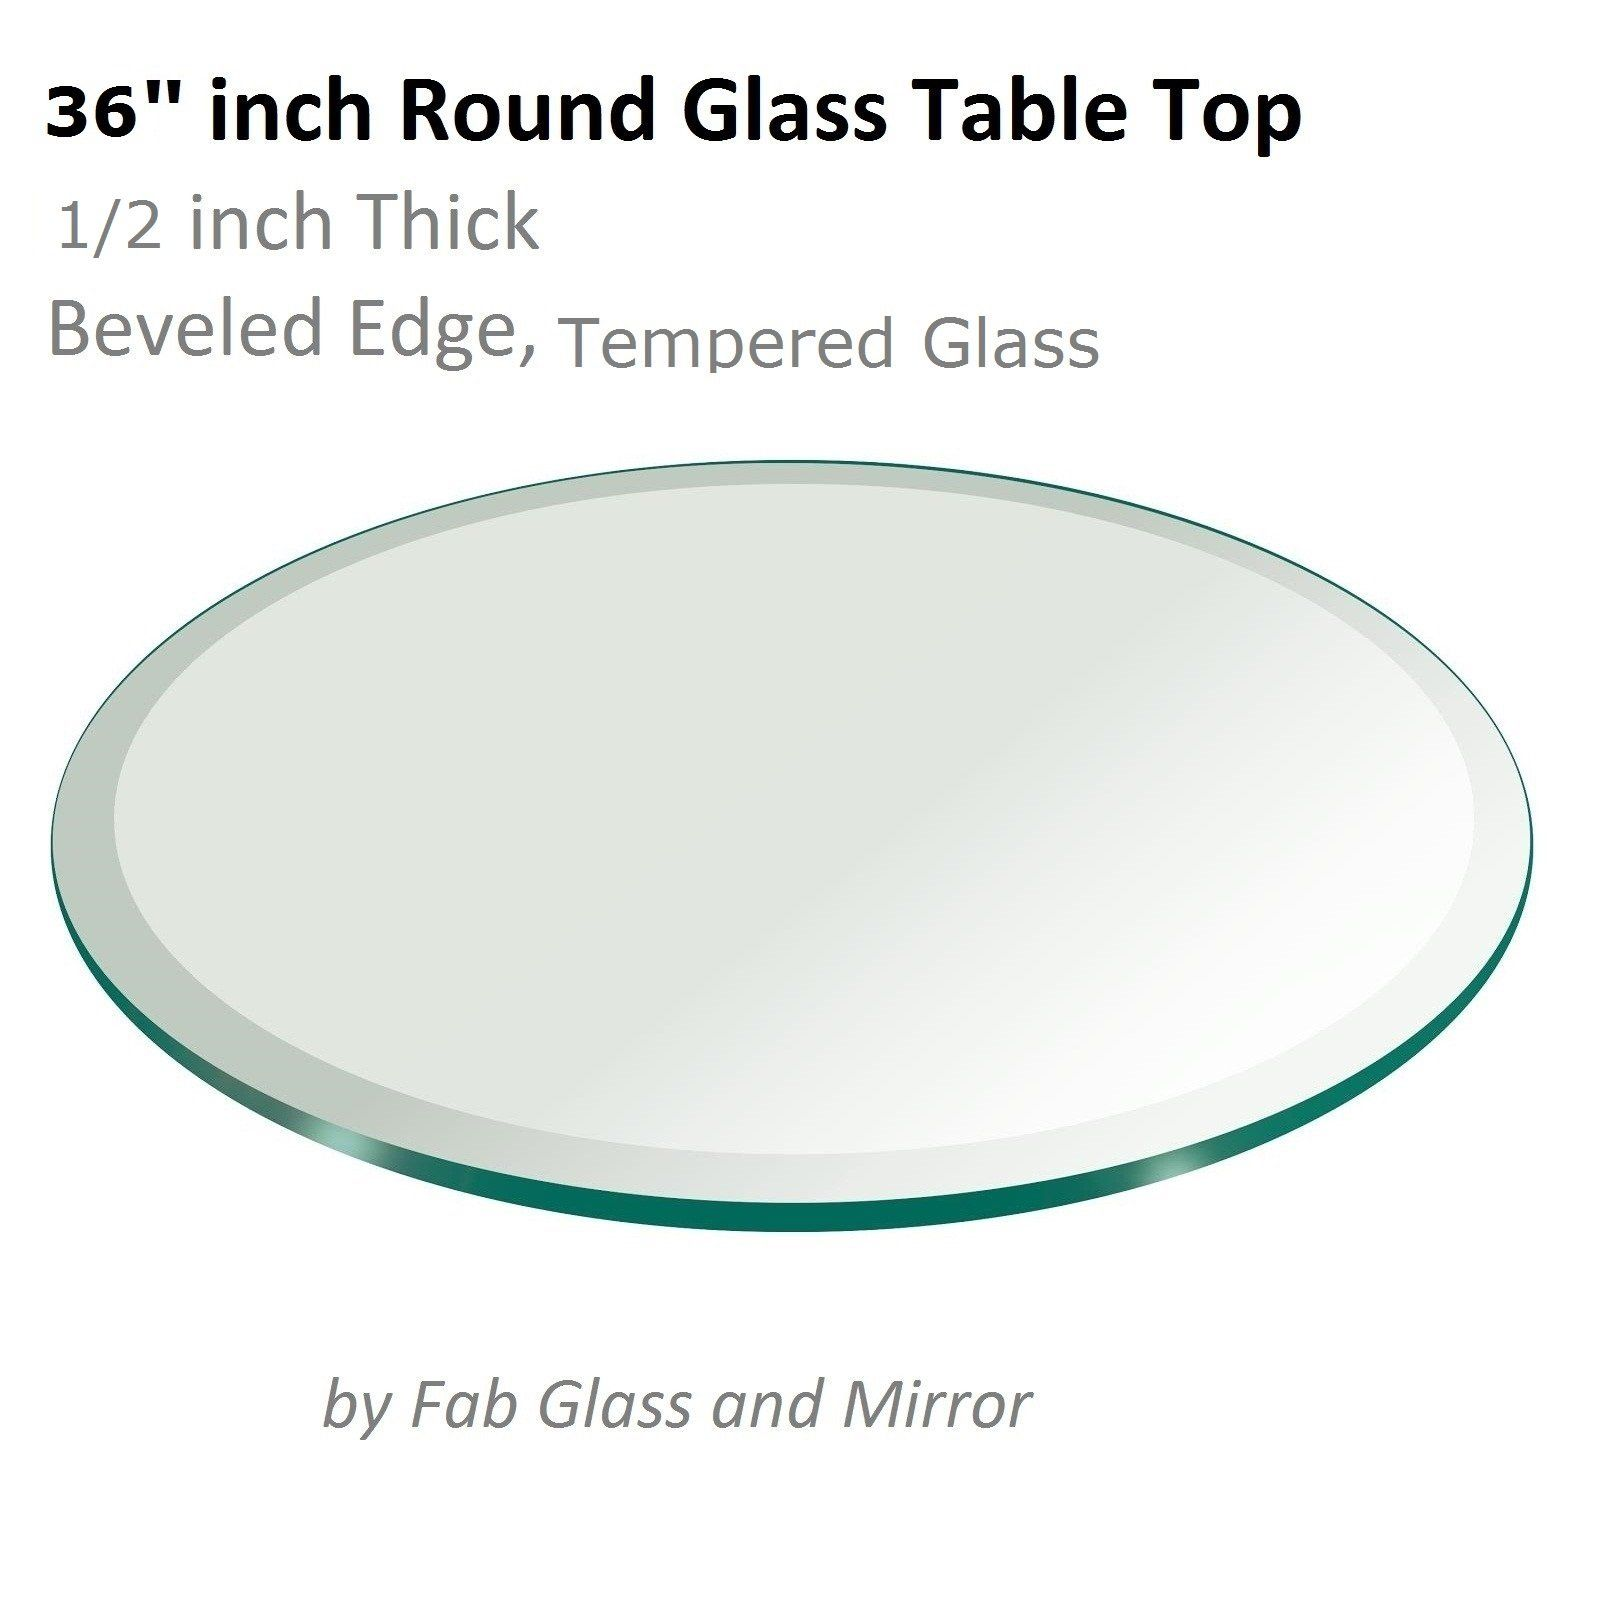 36 Inch Round Glass Table Top 1 2 Thick Tempered Beveled Edge By Fab Glass And Mirror You Can Find More Details By Visiting Round Glass Table Top Glass Table Tempered Glass Table Top